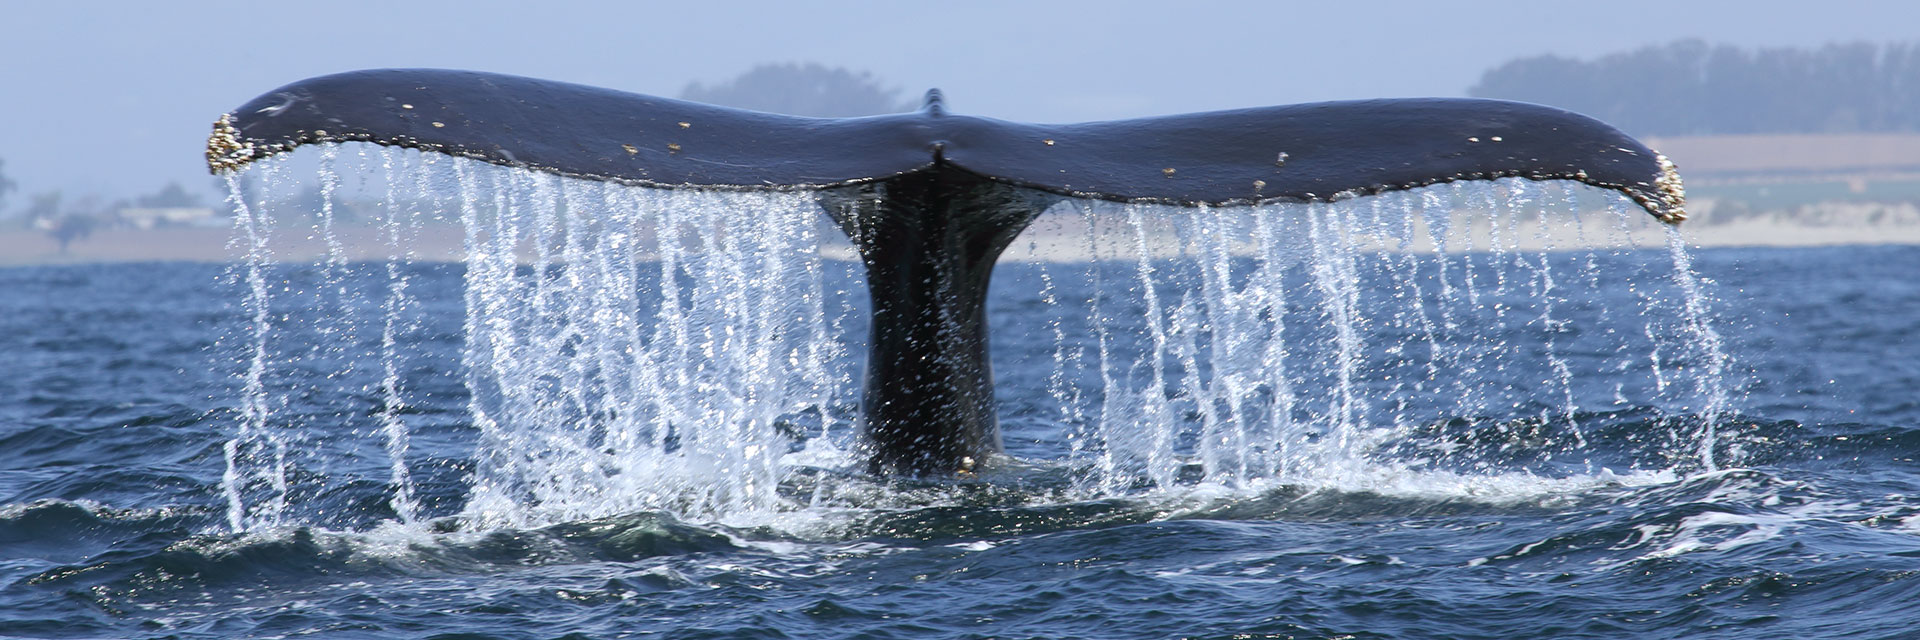 Whale Watching Package in Monterey Hotel